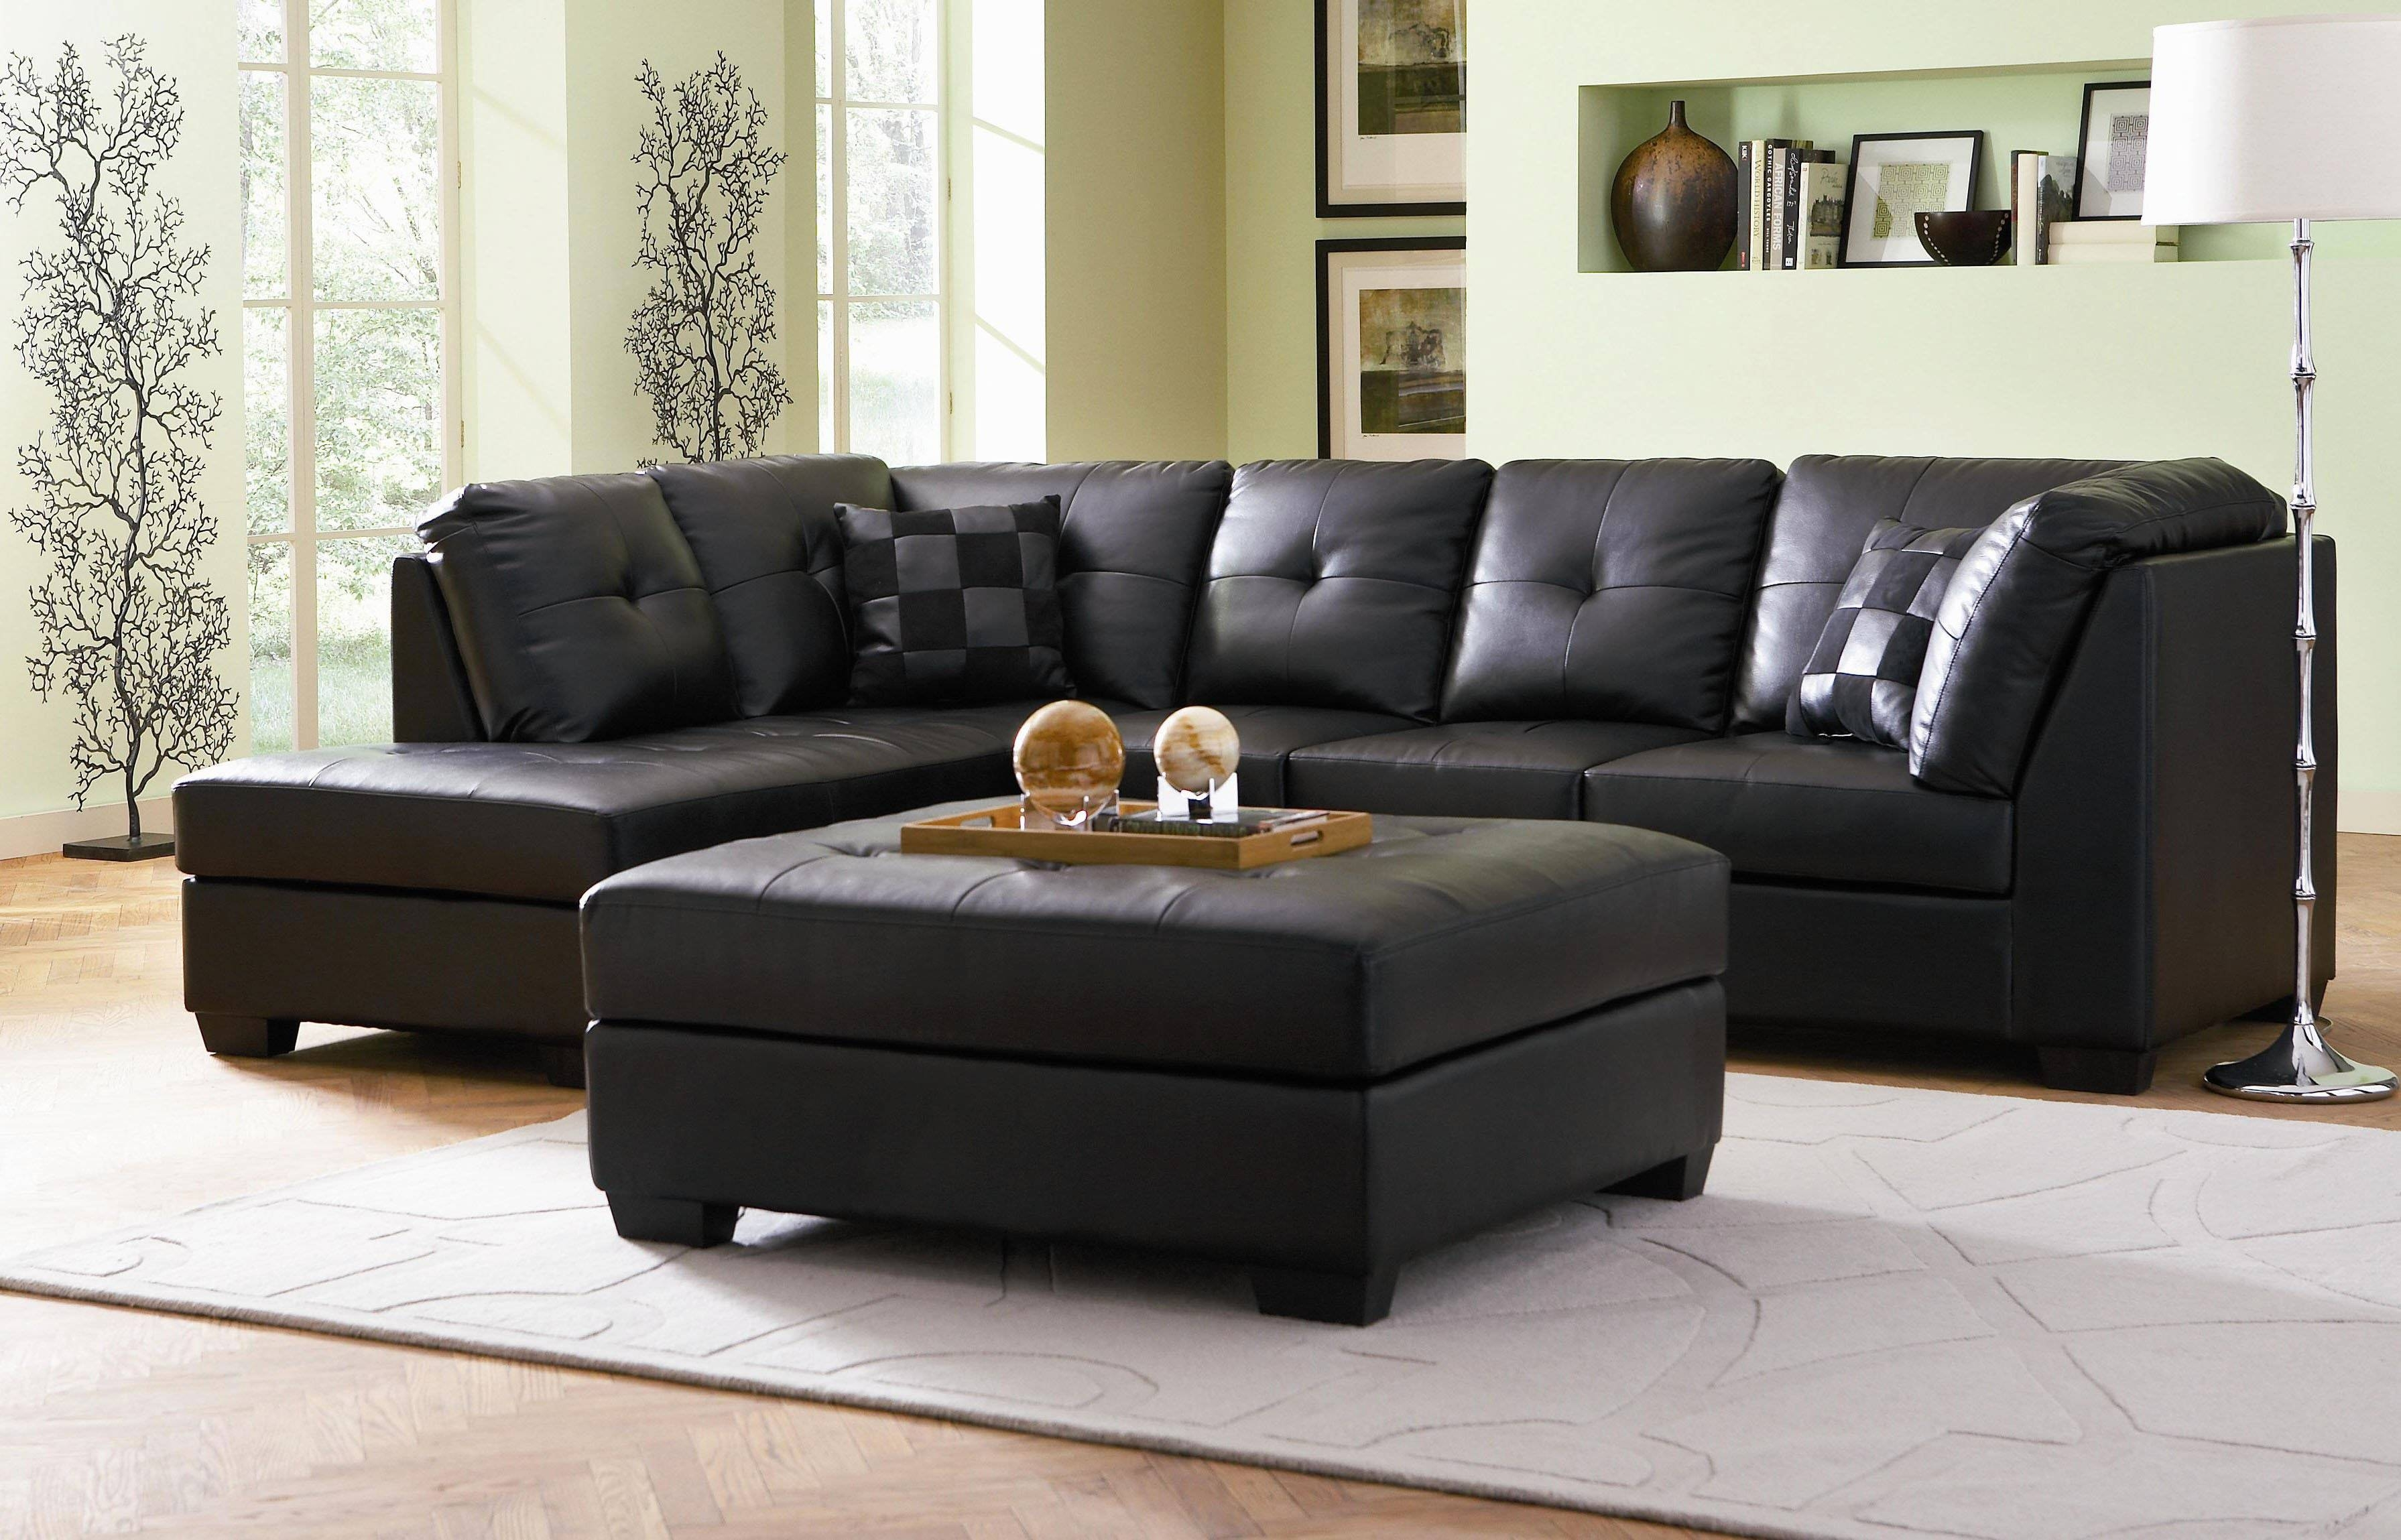 Great Sectional Sofa For Sale Cheap 38 In Seagrass Sectional Sofa Pertaining To Seagrass Sectional Sofas (View 4 of 15)